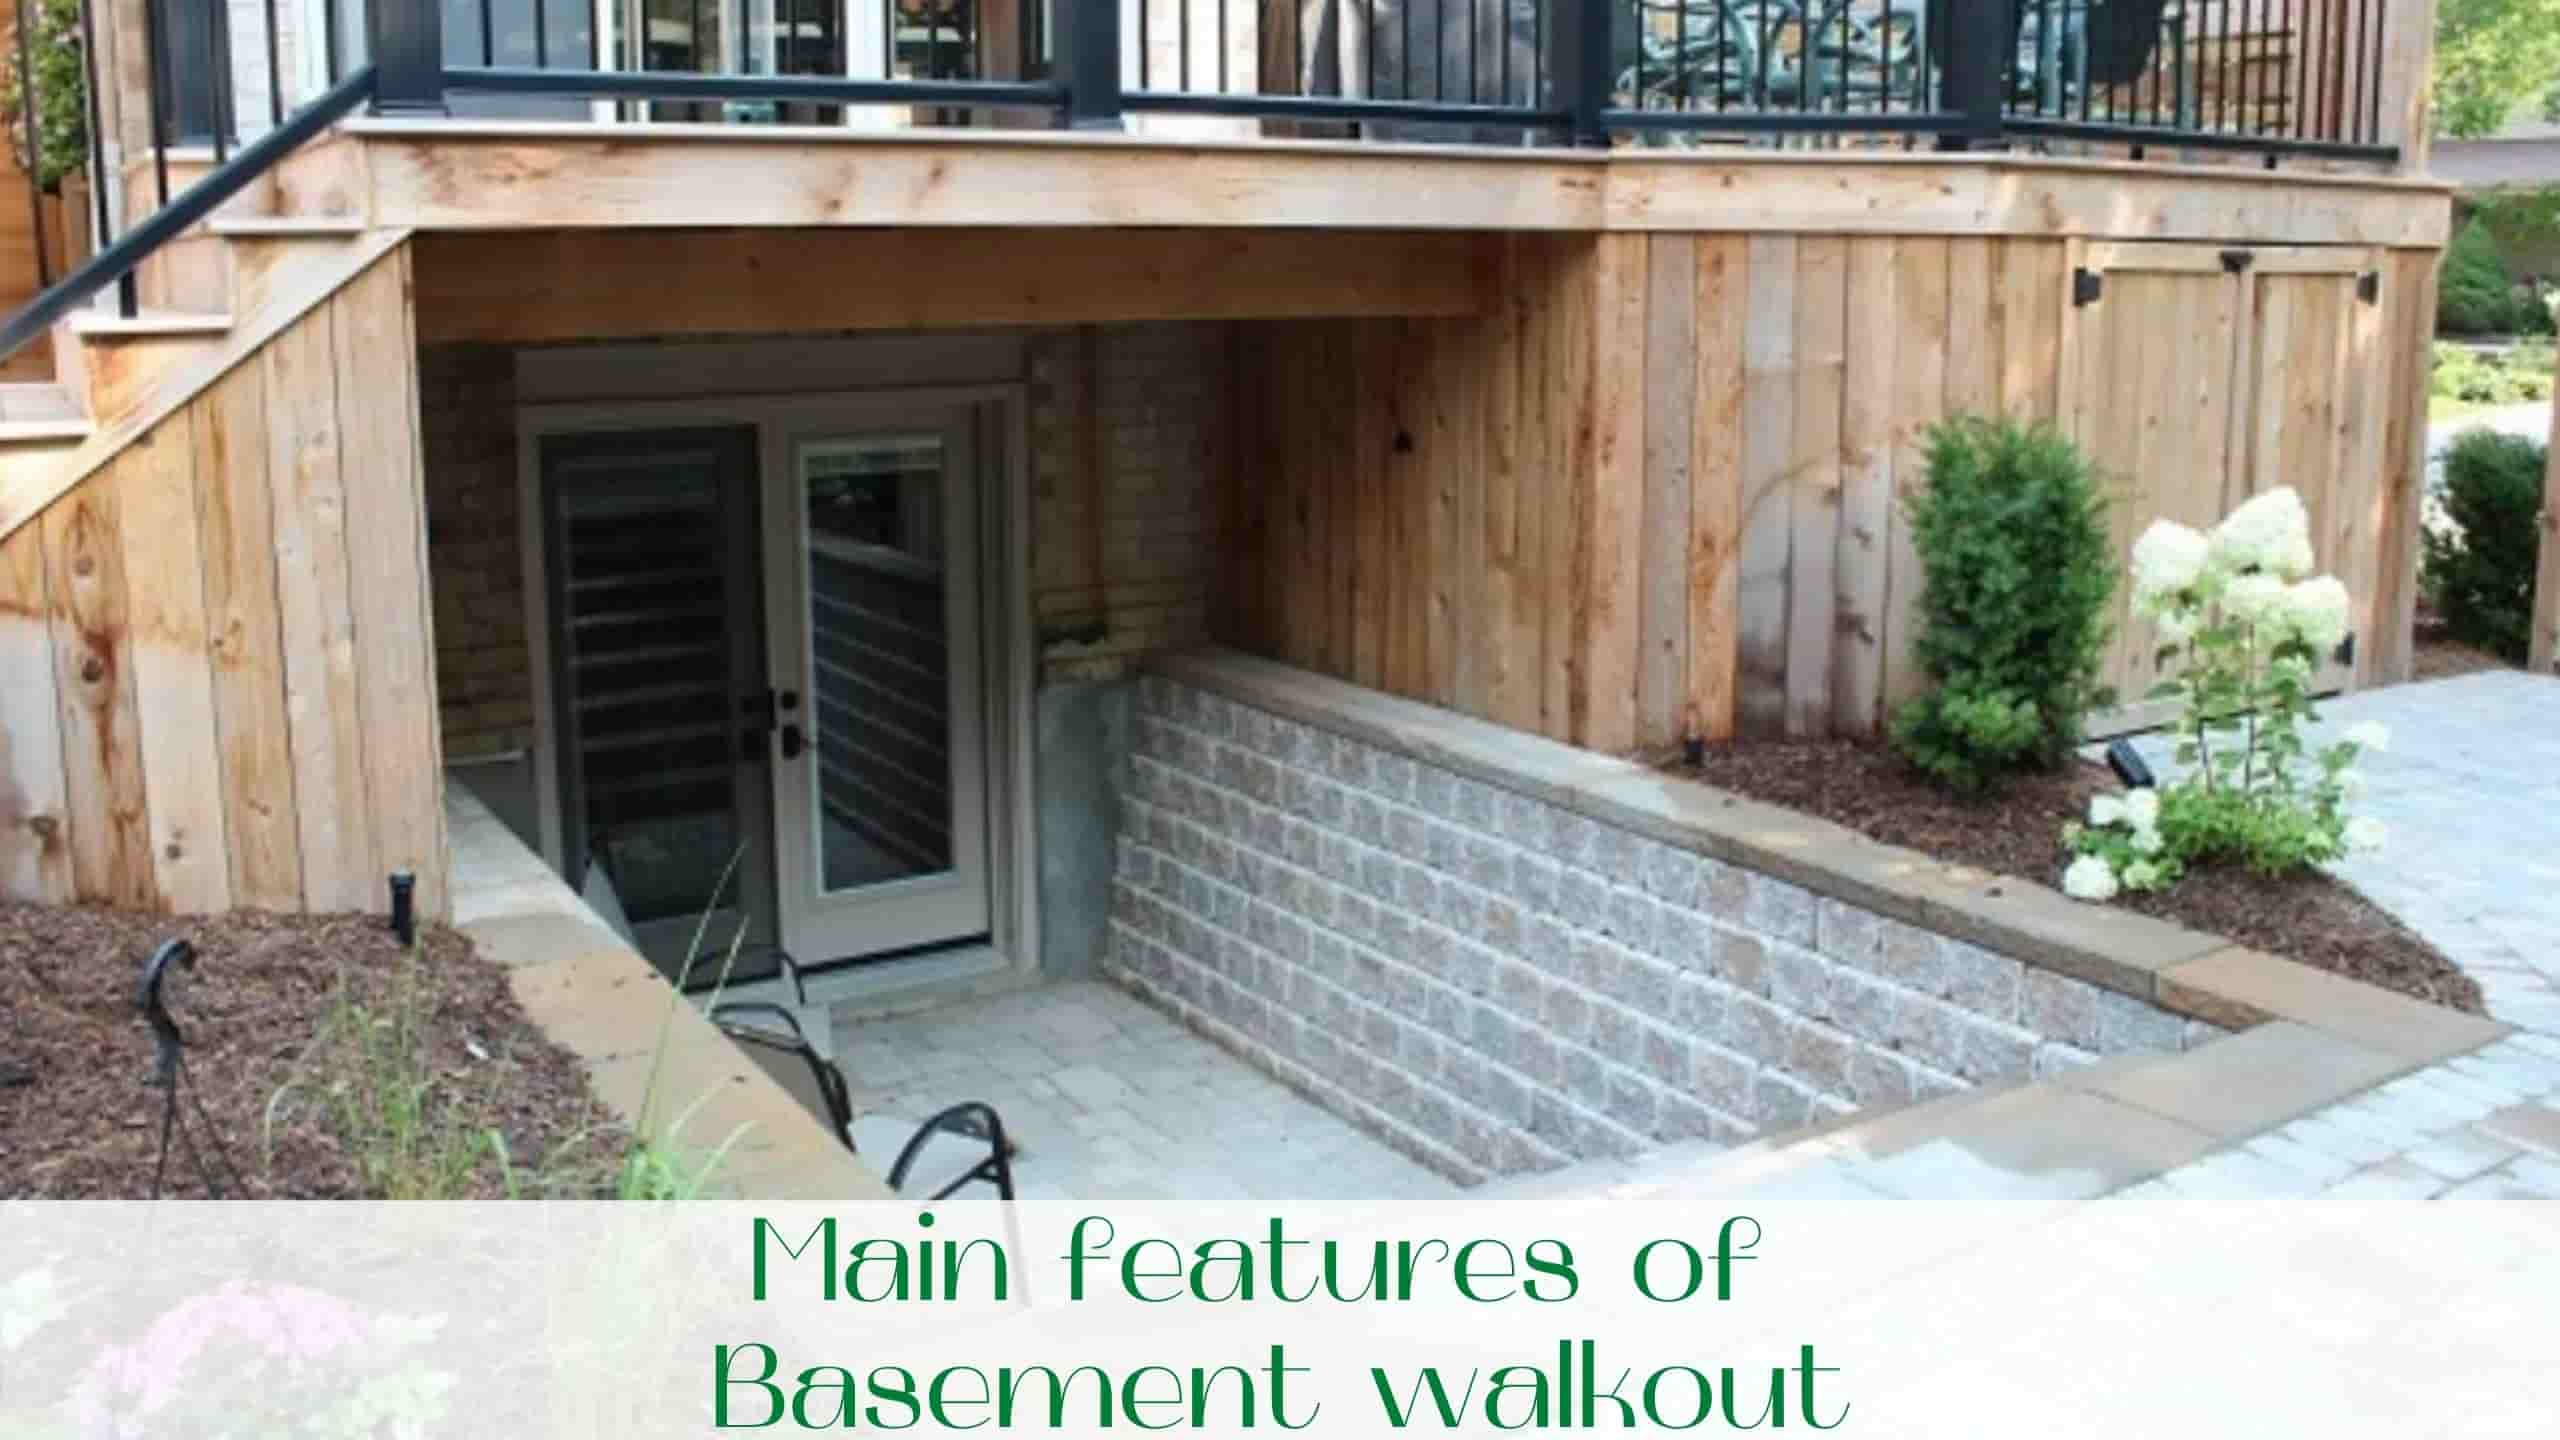 image-Main-features-of-Basement-walkout